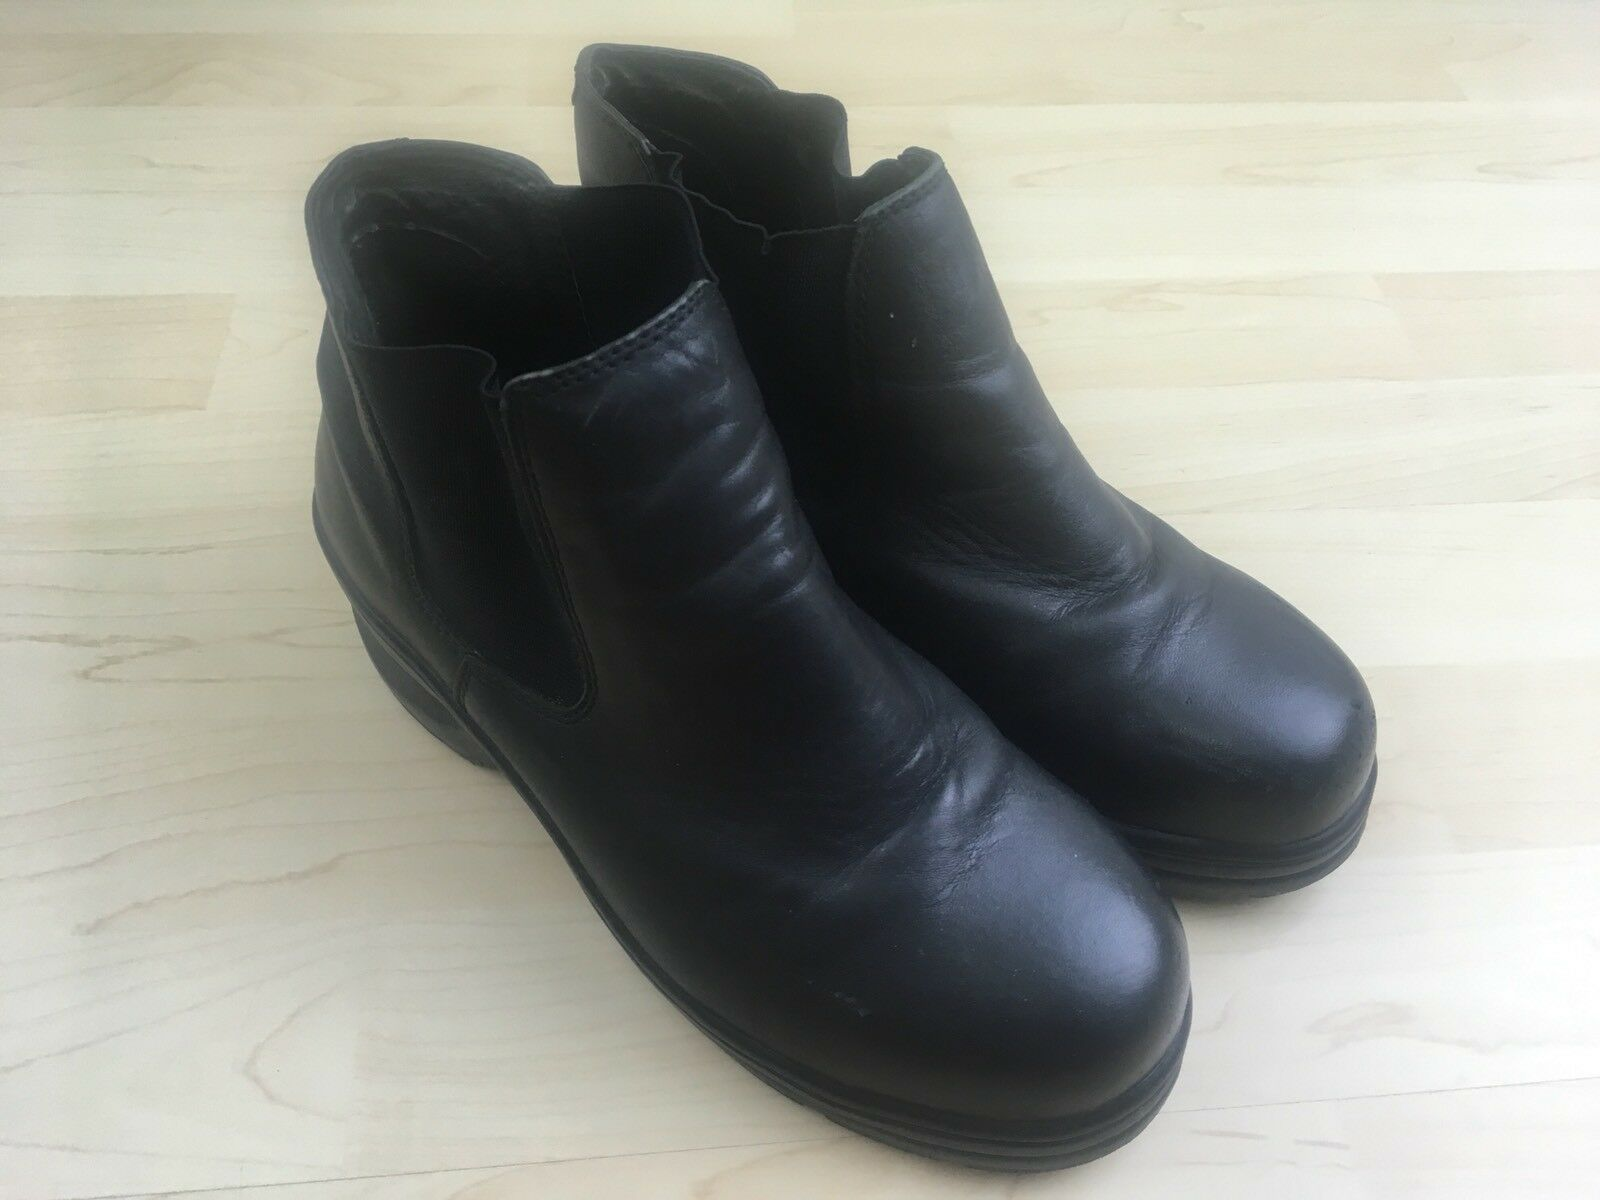 IRON AGE Men's Size 8 W Wide Ankle Boots Black STEEL TOE WORK 443 ANSI 241 PT 99